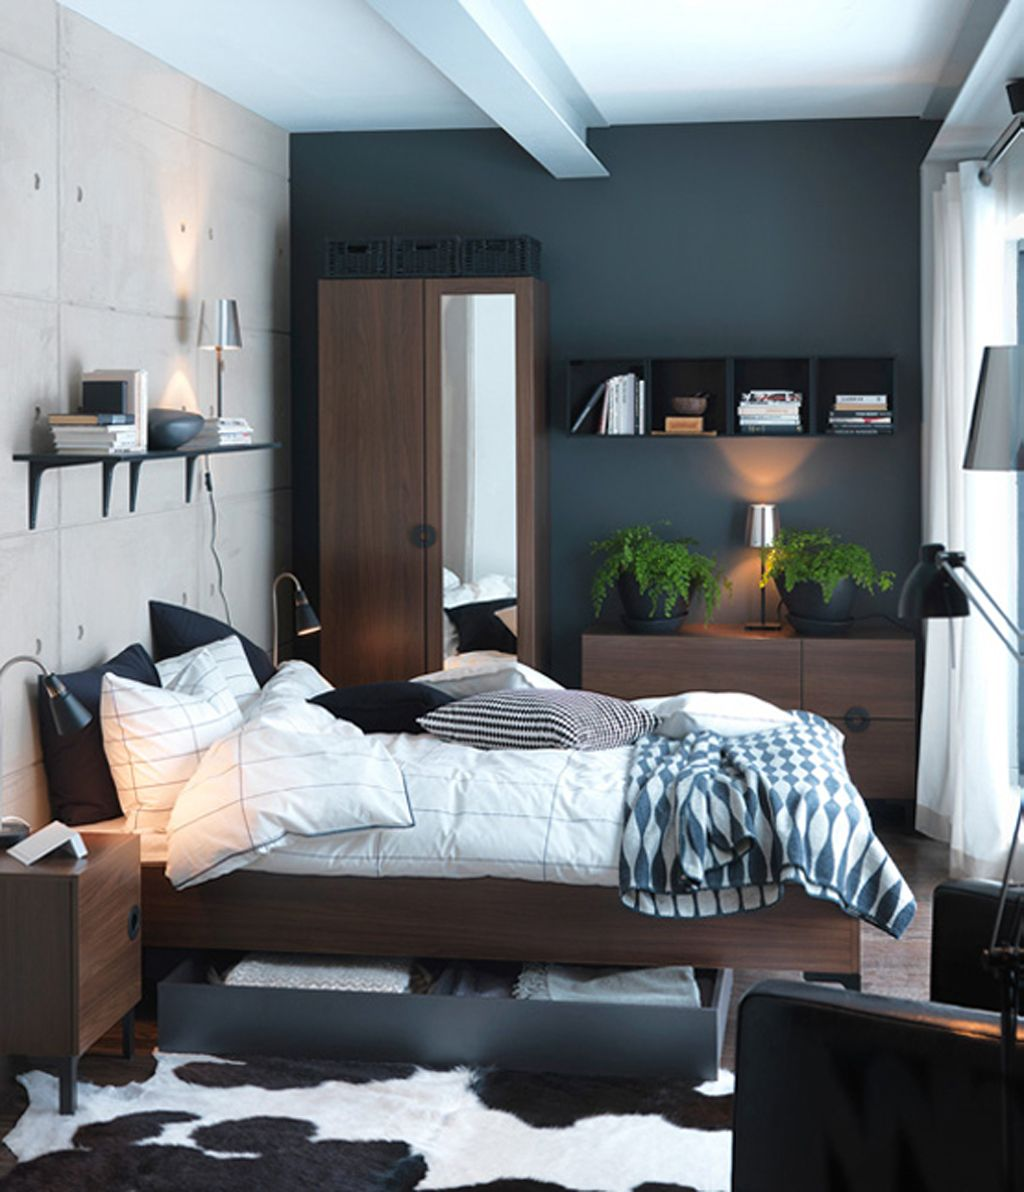 Bedroom Design Ikea Ikea Bedroom Ideas Ikea Living Room Designs Arhanq  Masculine